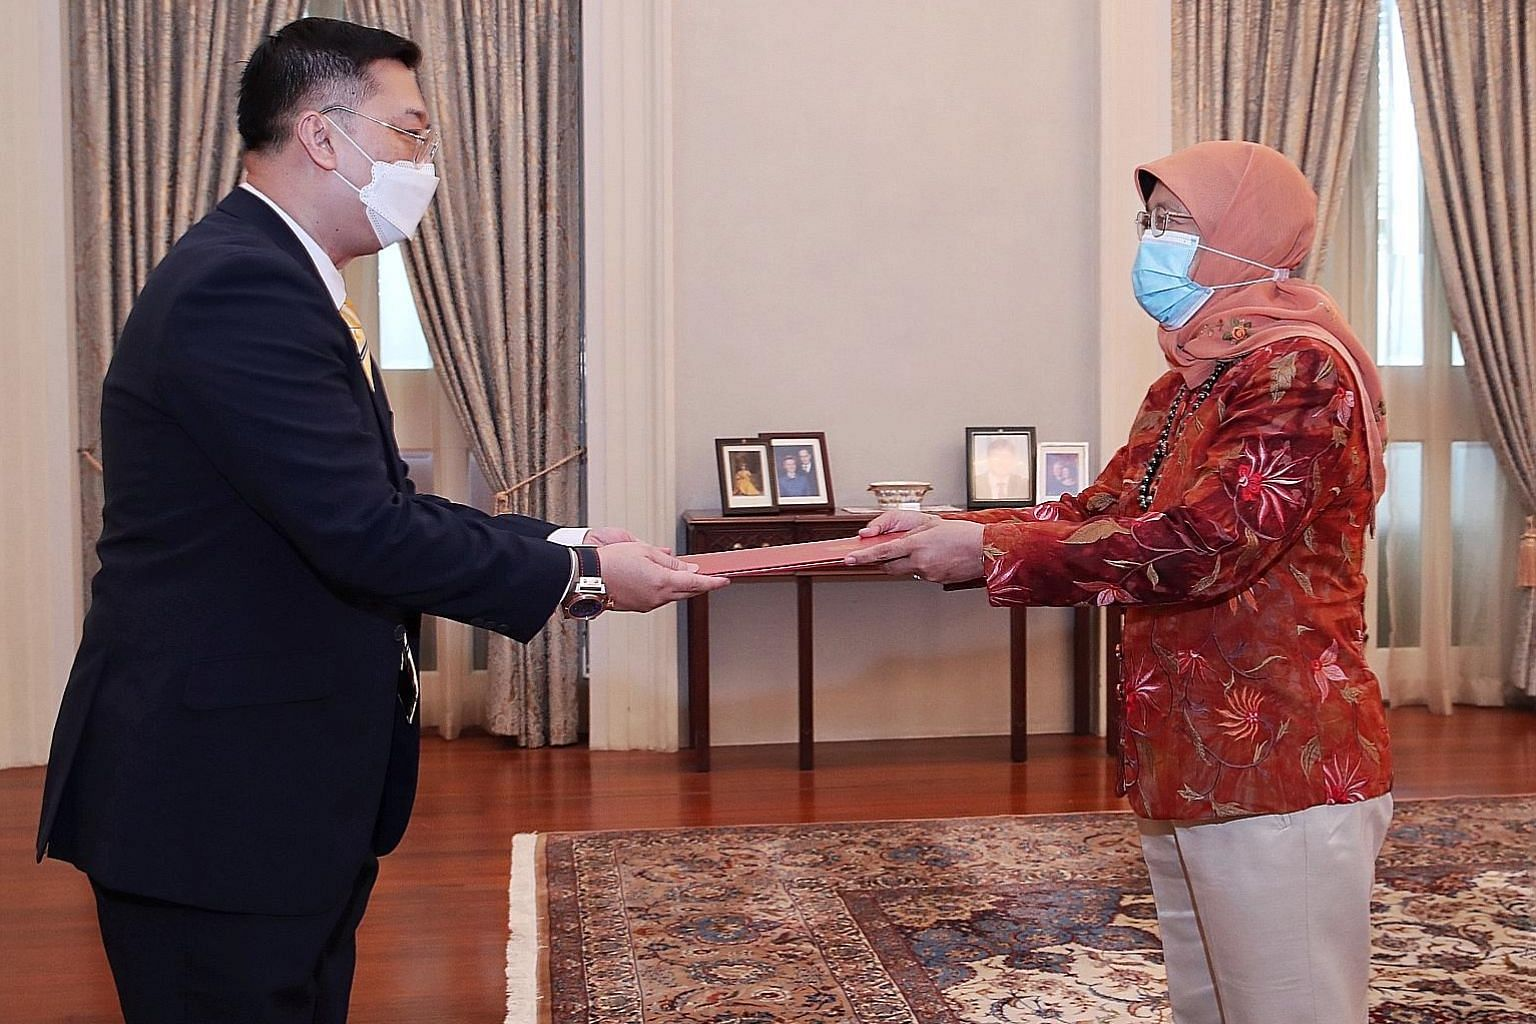 Veteran diplomat Simon Wong receiving the letter of credence from President Halimah Yacob at the Istana yesterday. Mr Wong has been appointed Singapore's new High Commissioner to India. PHOTO: MINISTRY OF COMMUNICATIONS AND INFORMATION